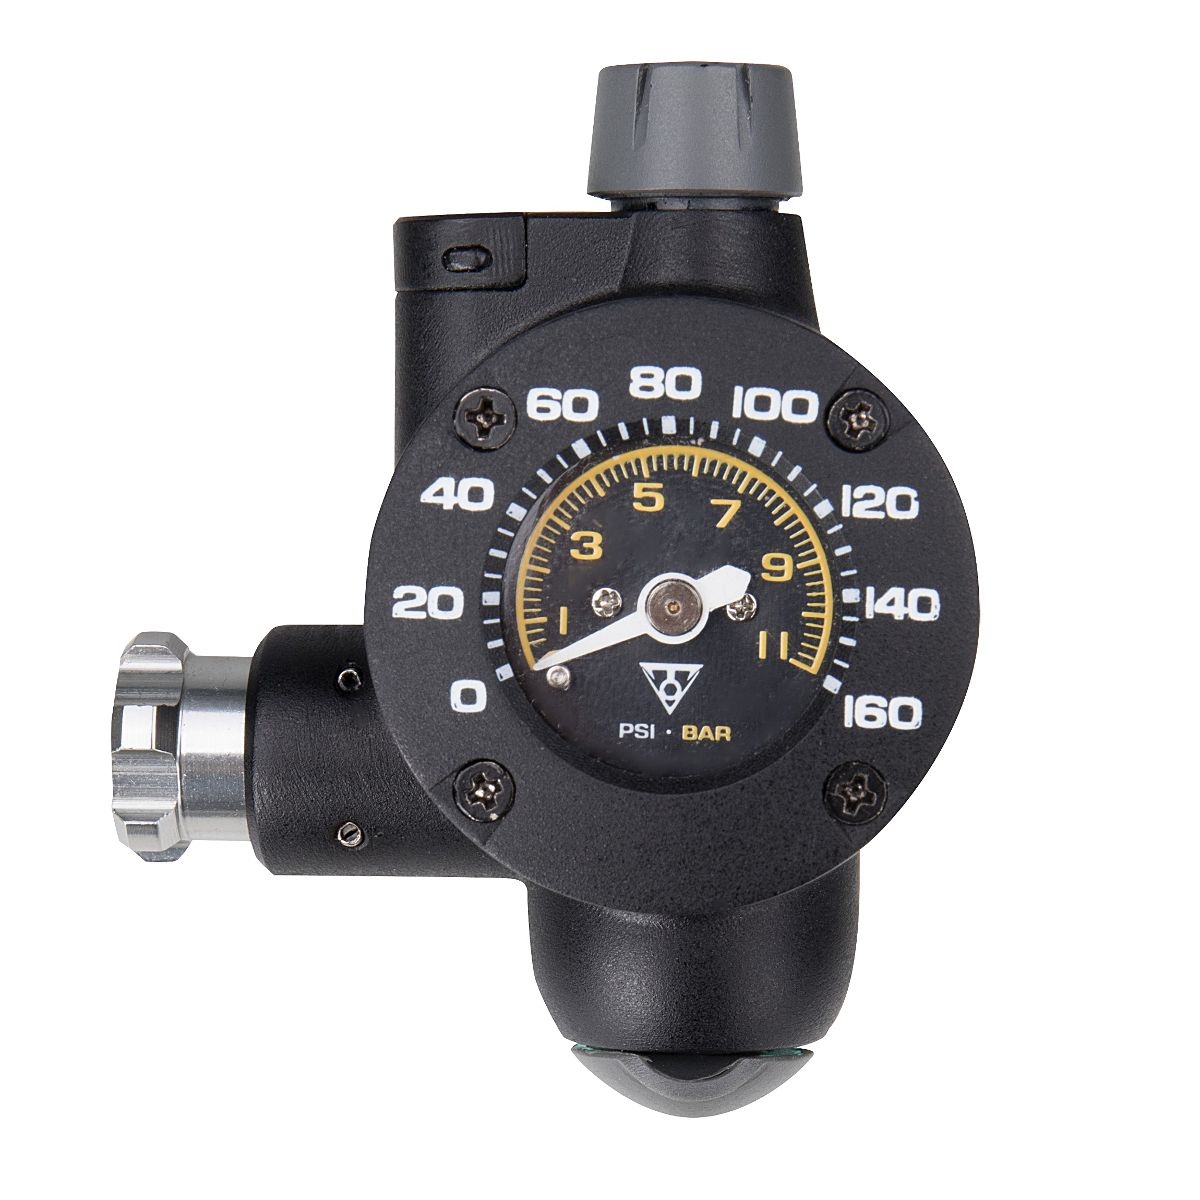 Airbooster G2 with manometer Co2 feeder